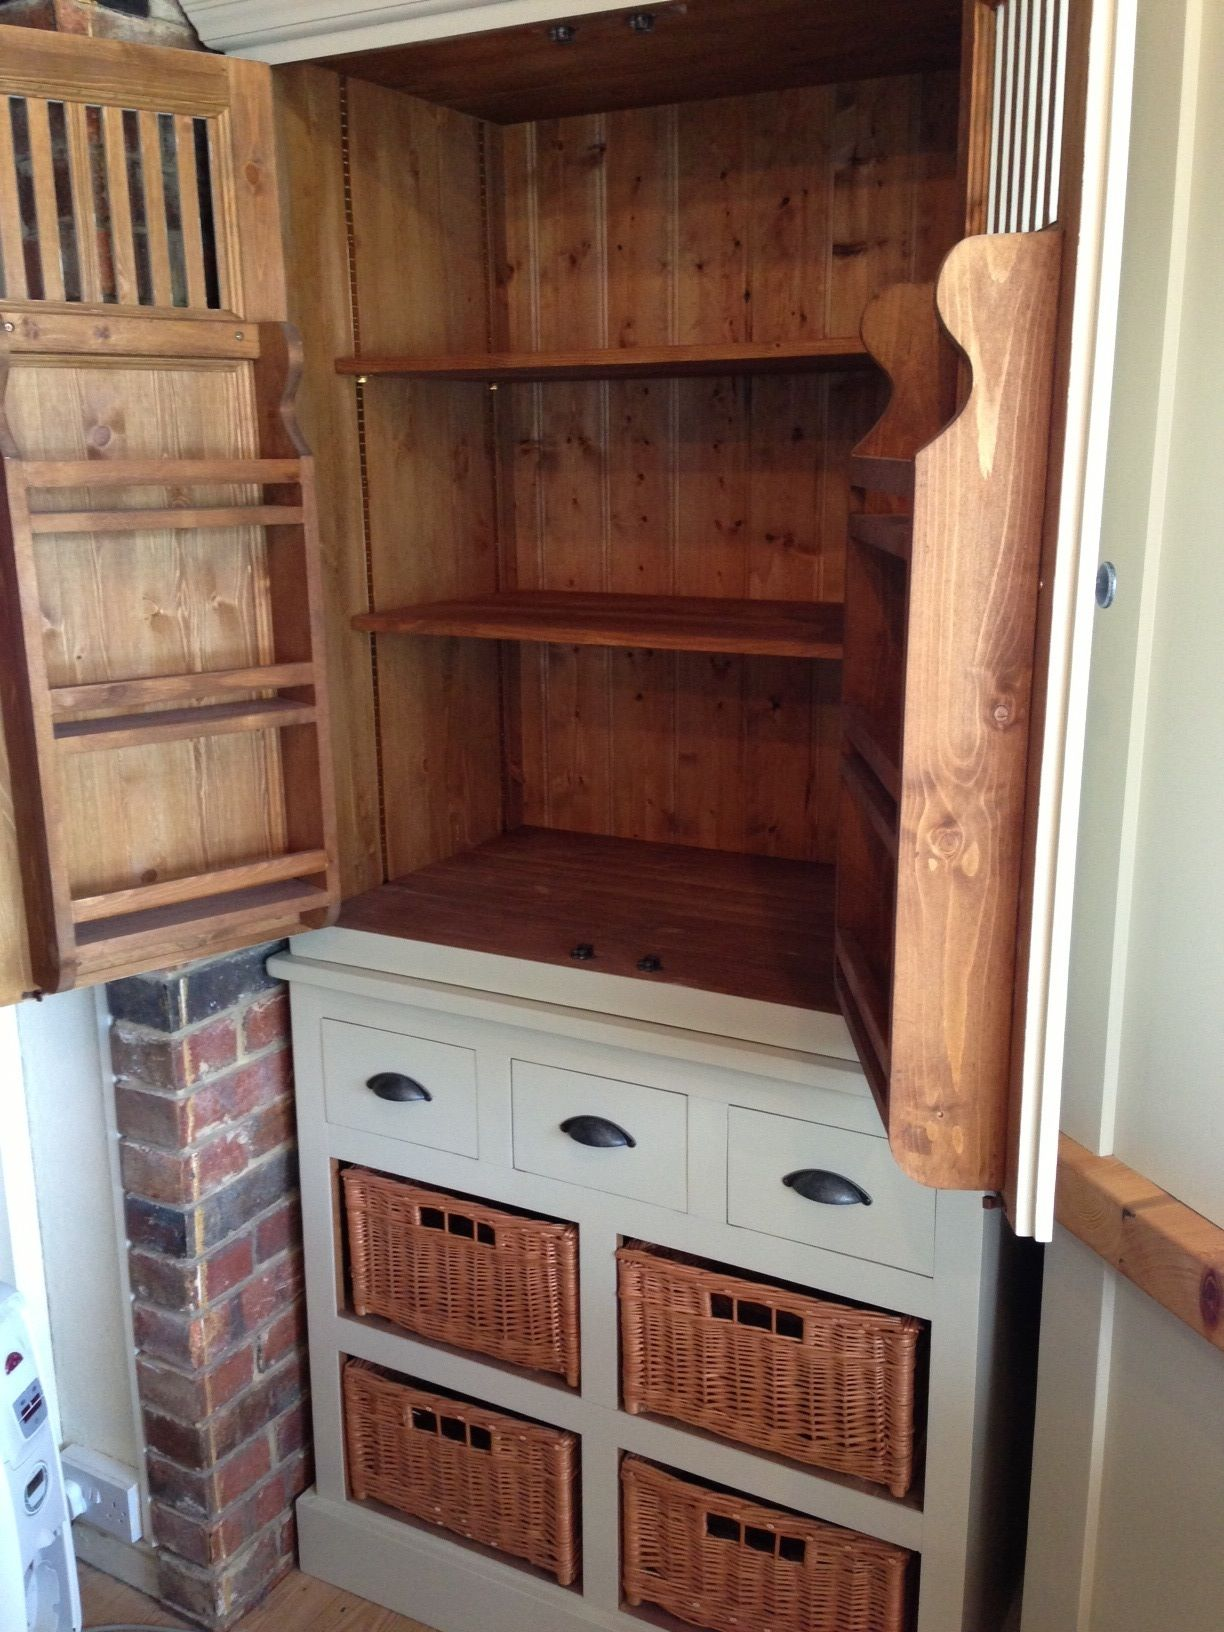 Marks And Spencer Kitchen Furniture Padstow 2 Door Larder Unit Putty Purpose Beautiful And Back To